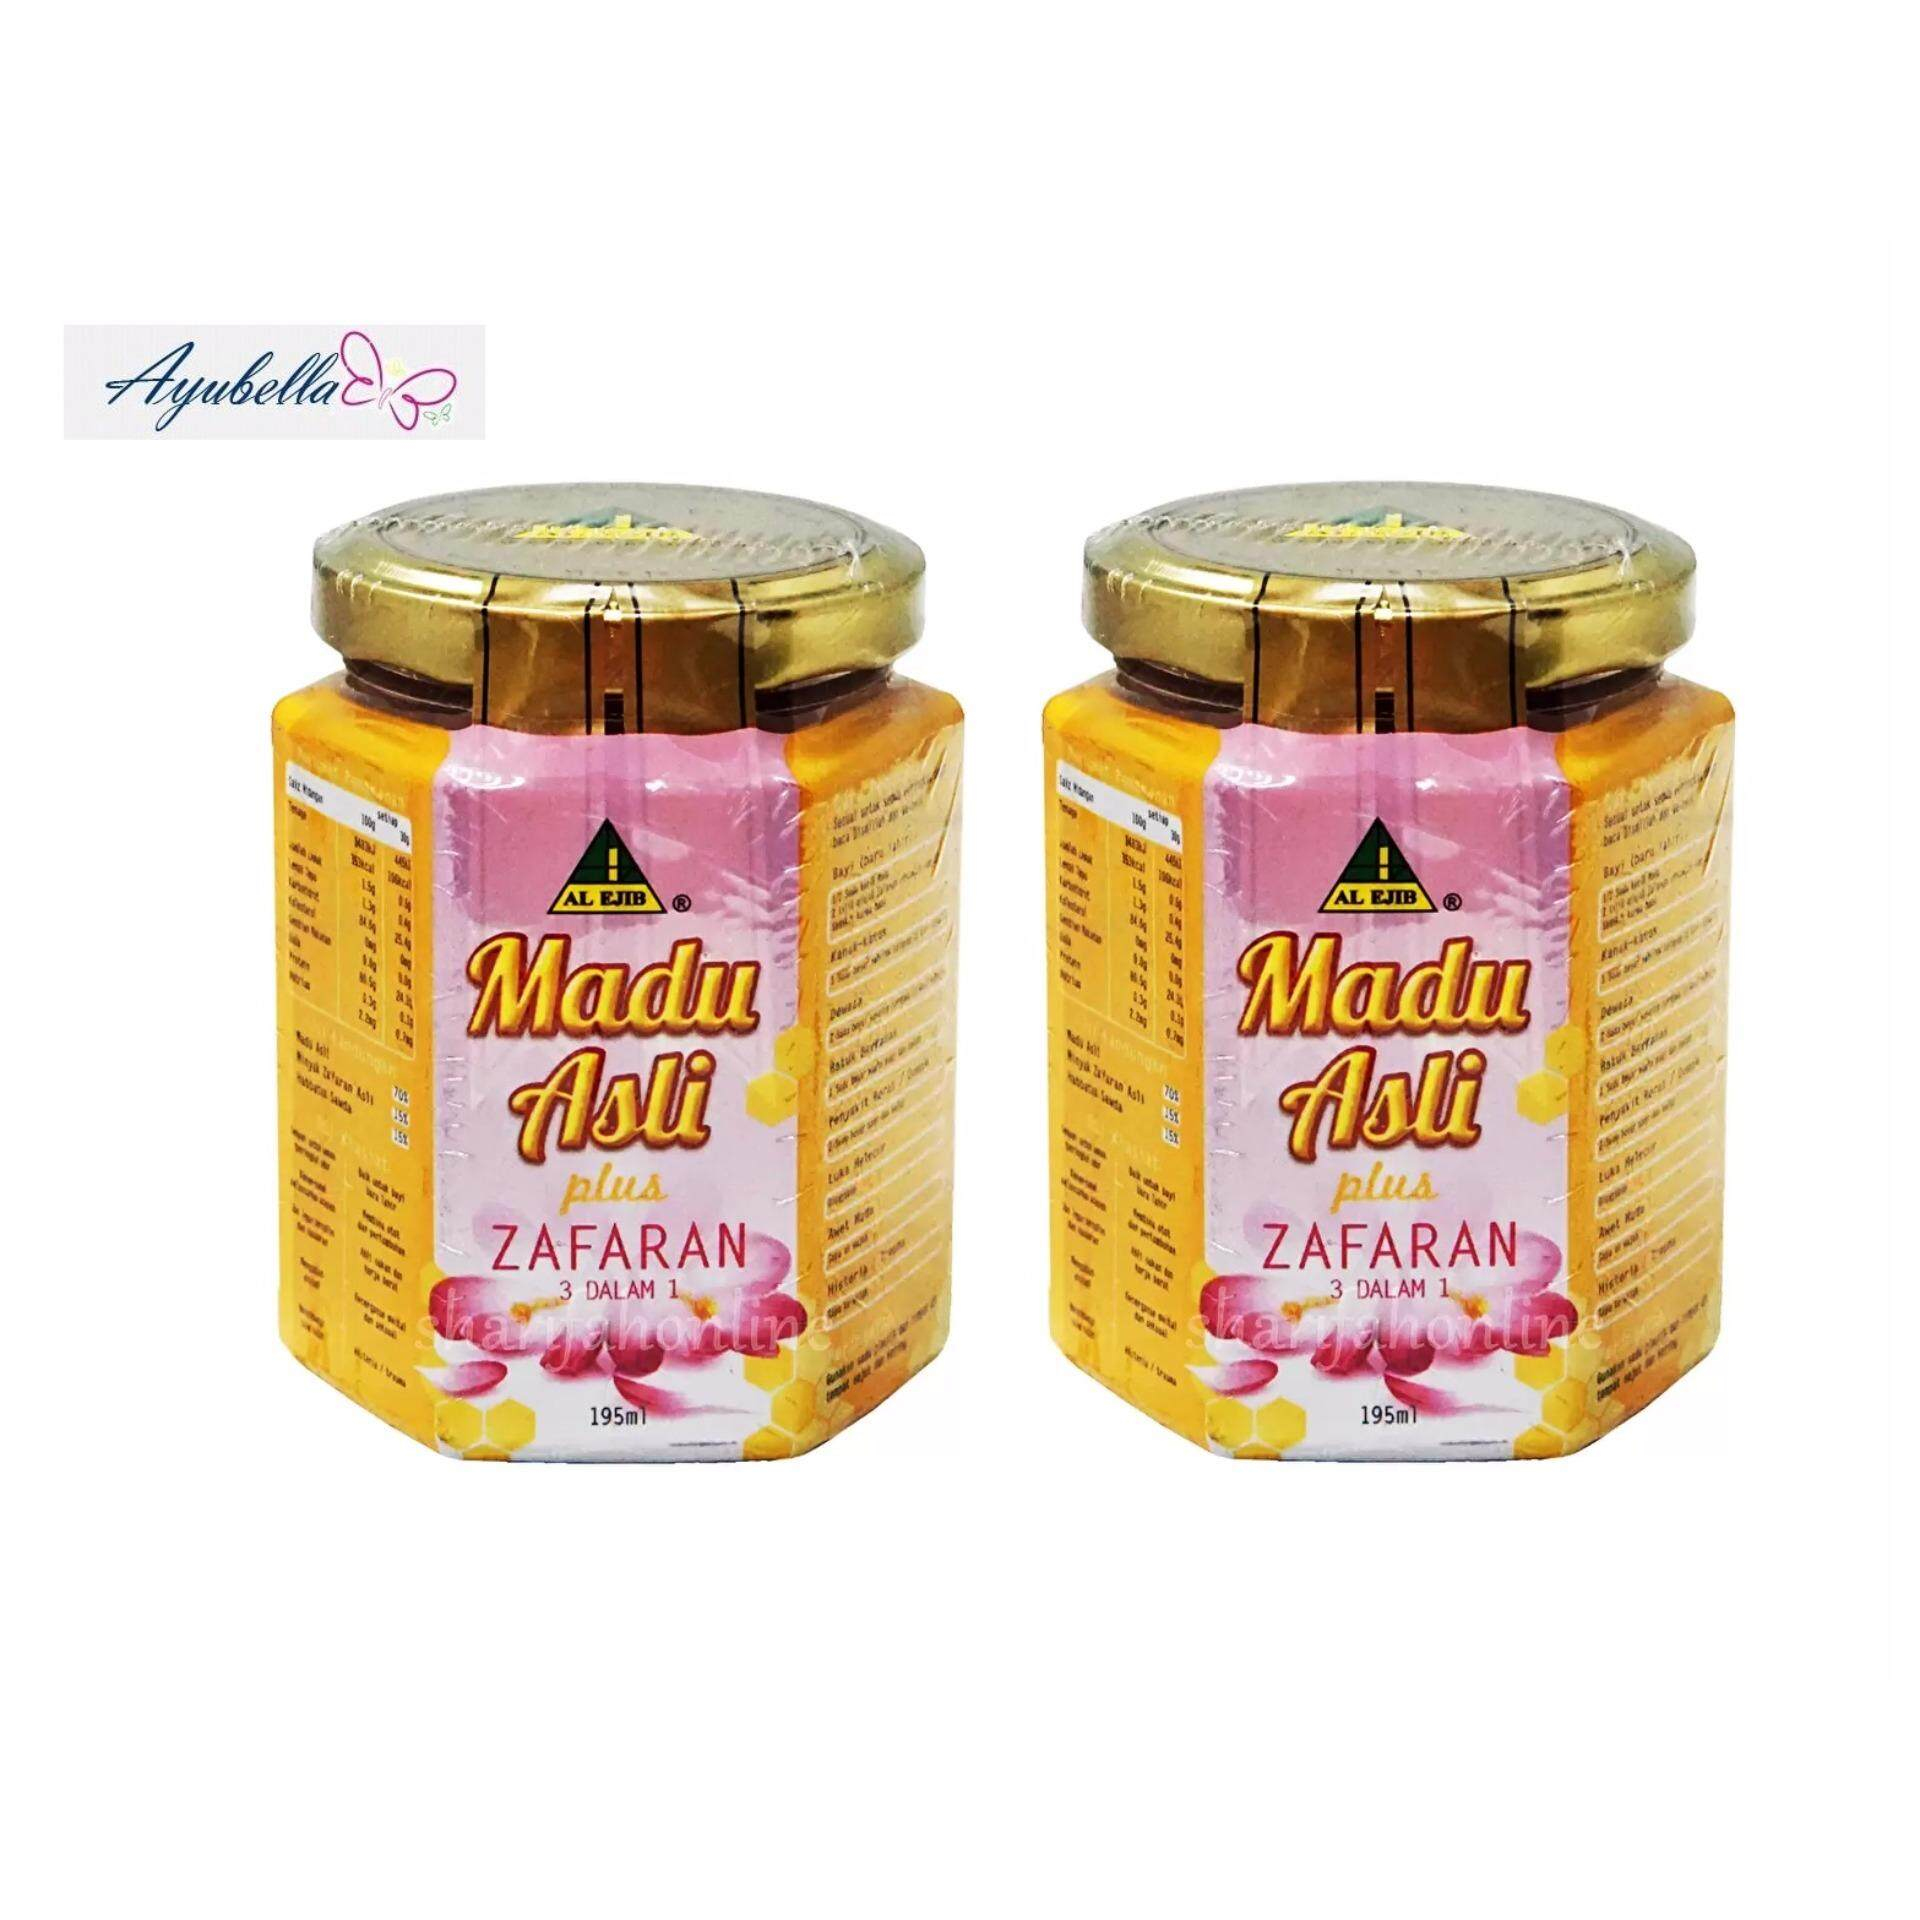 Al Ejib Madu Asli Plus Zafaran (Pure Honey) 3 in 1 x 2